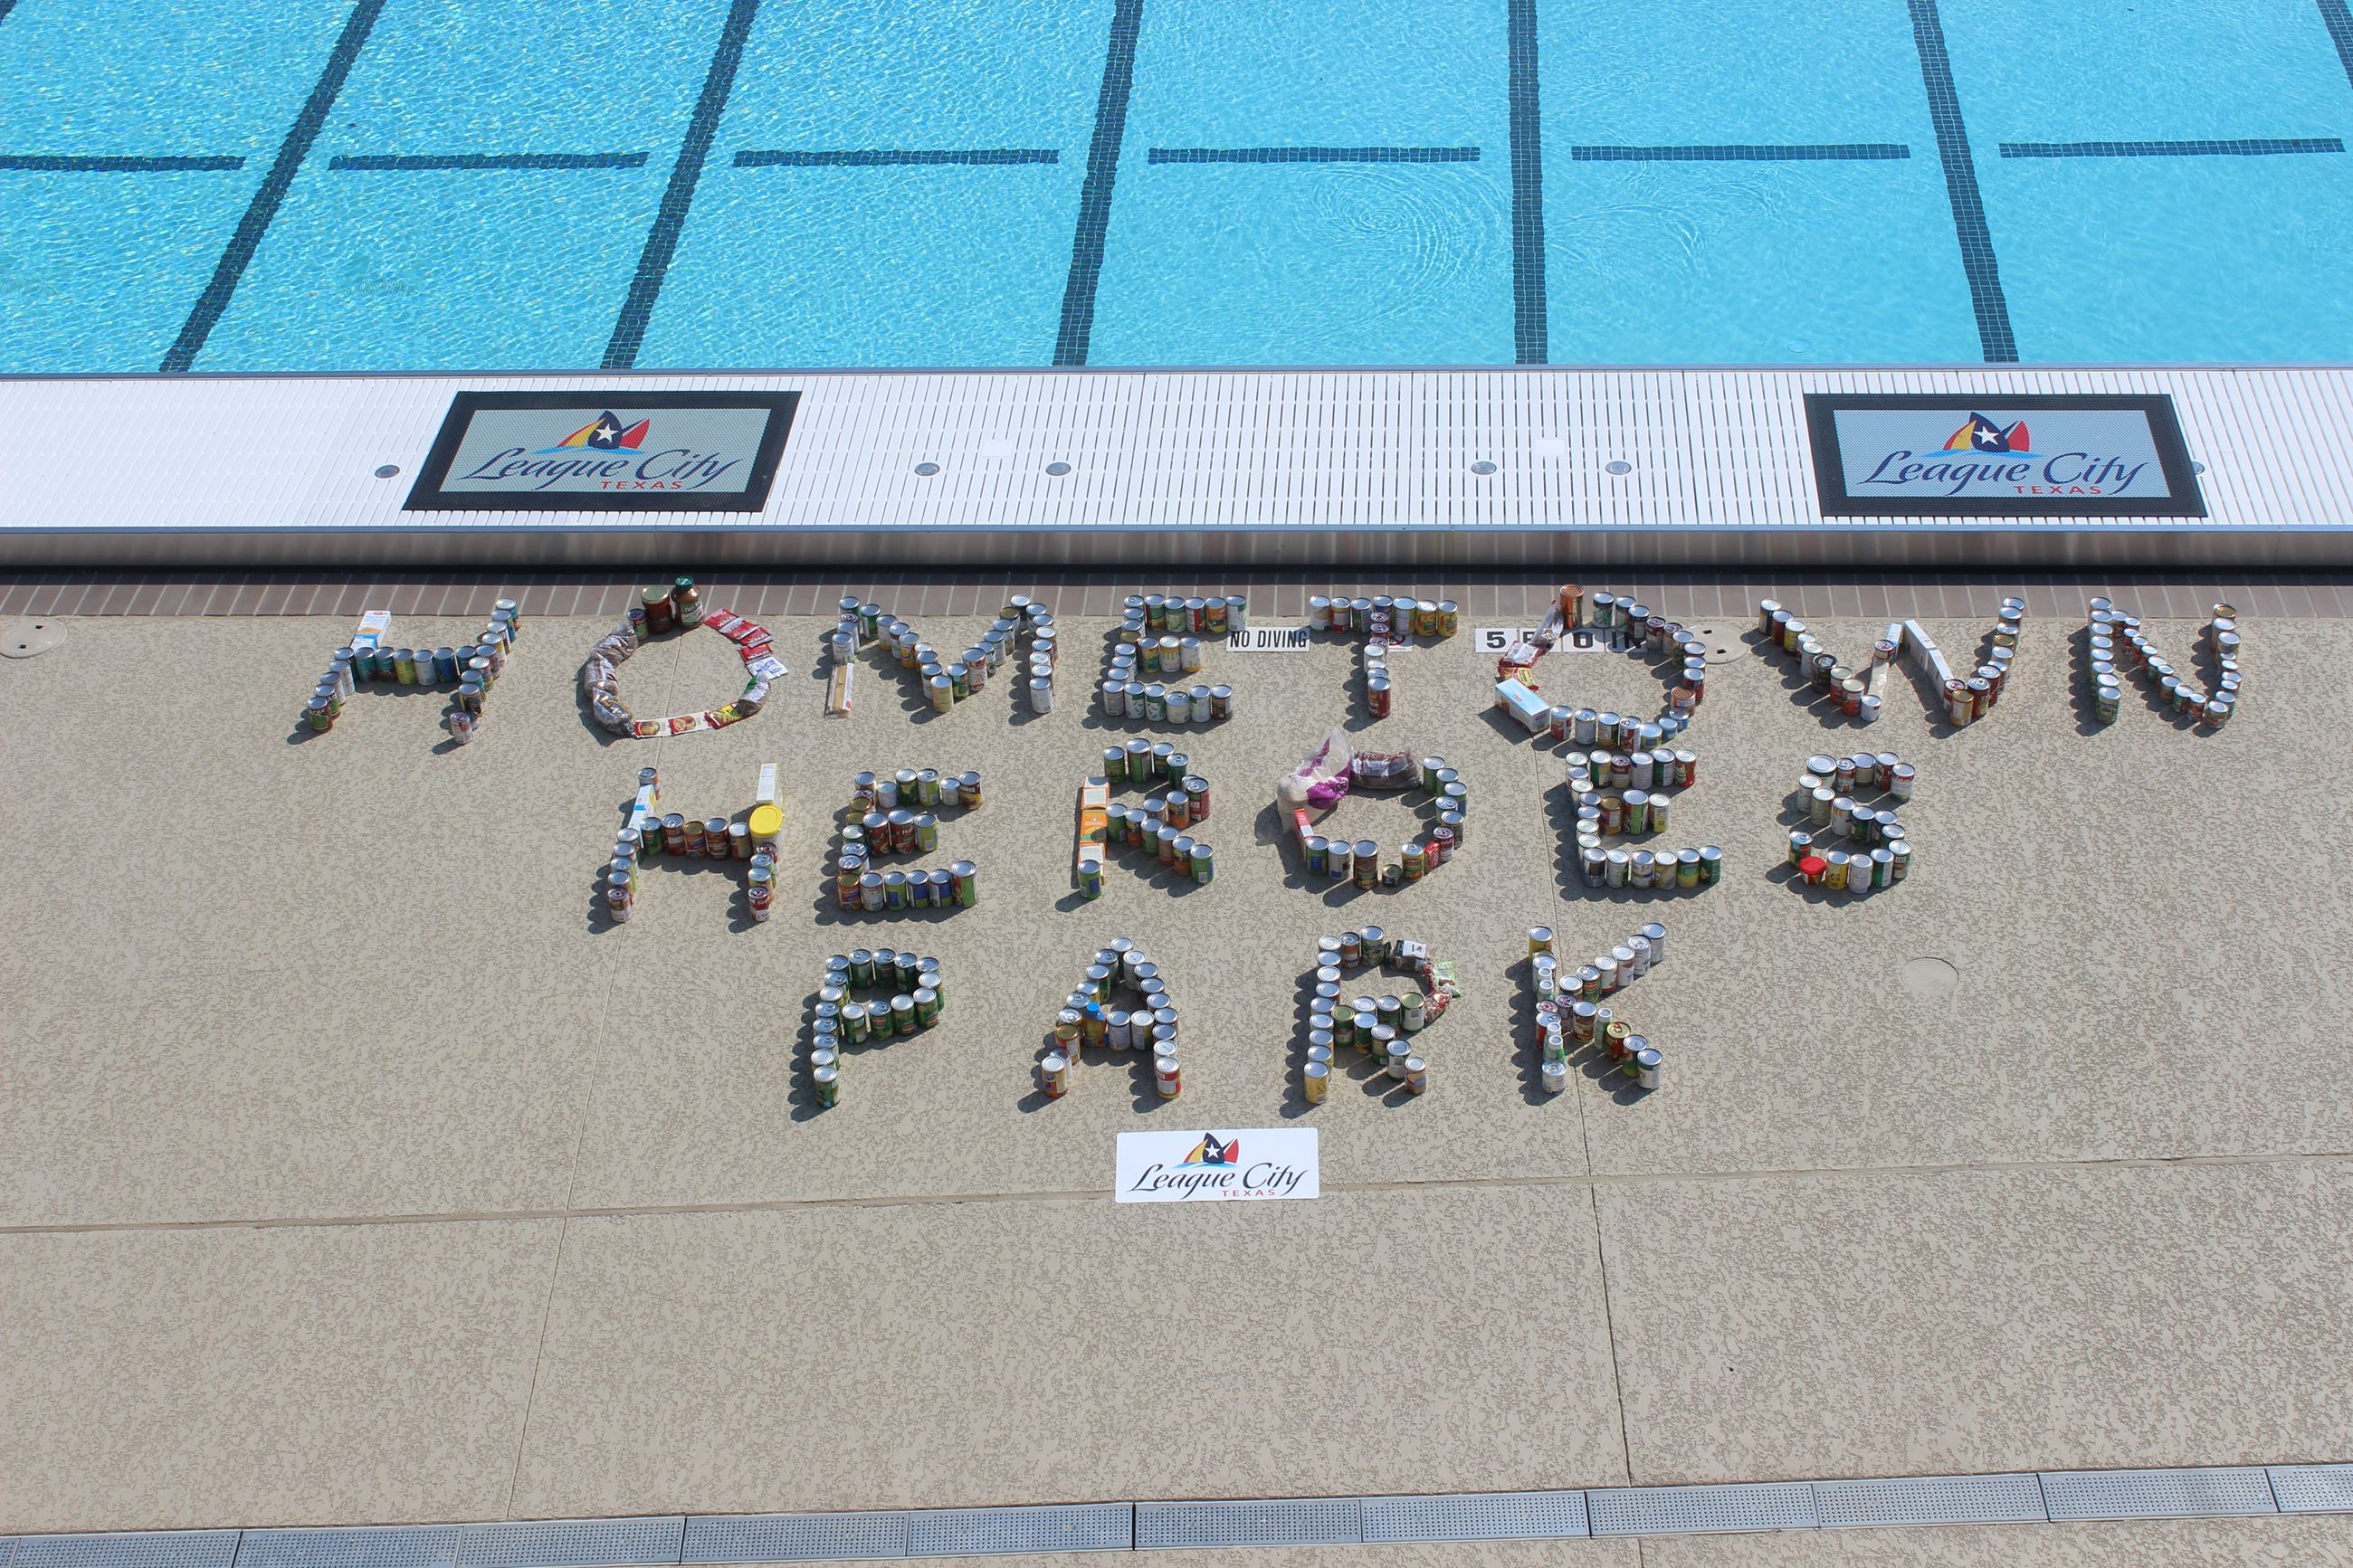 Photo that spells out Hometown Heroes Park on the pool deck